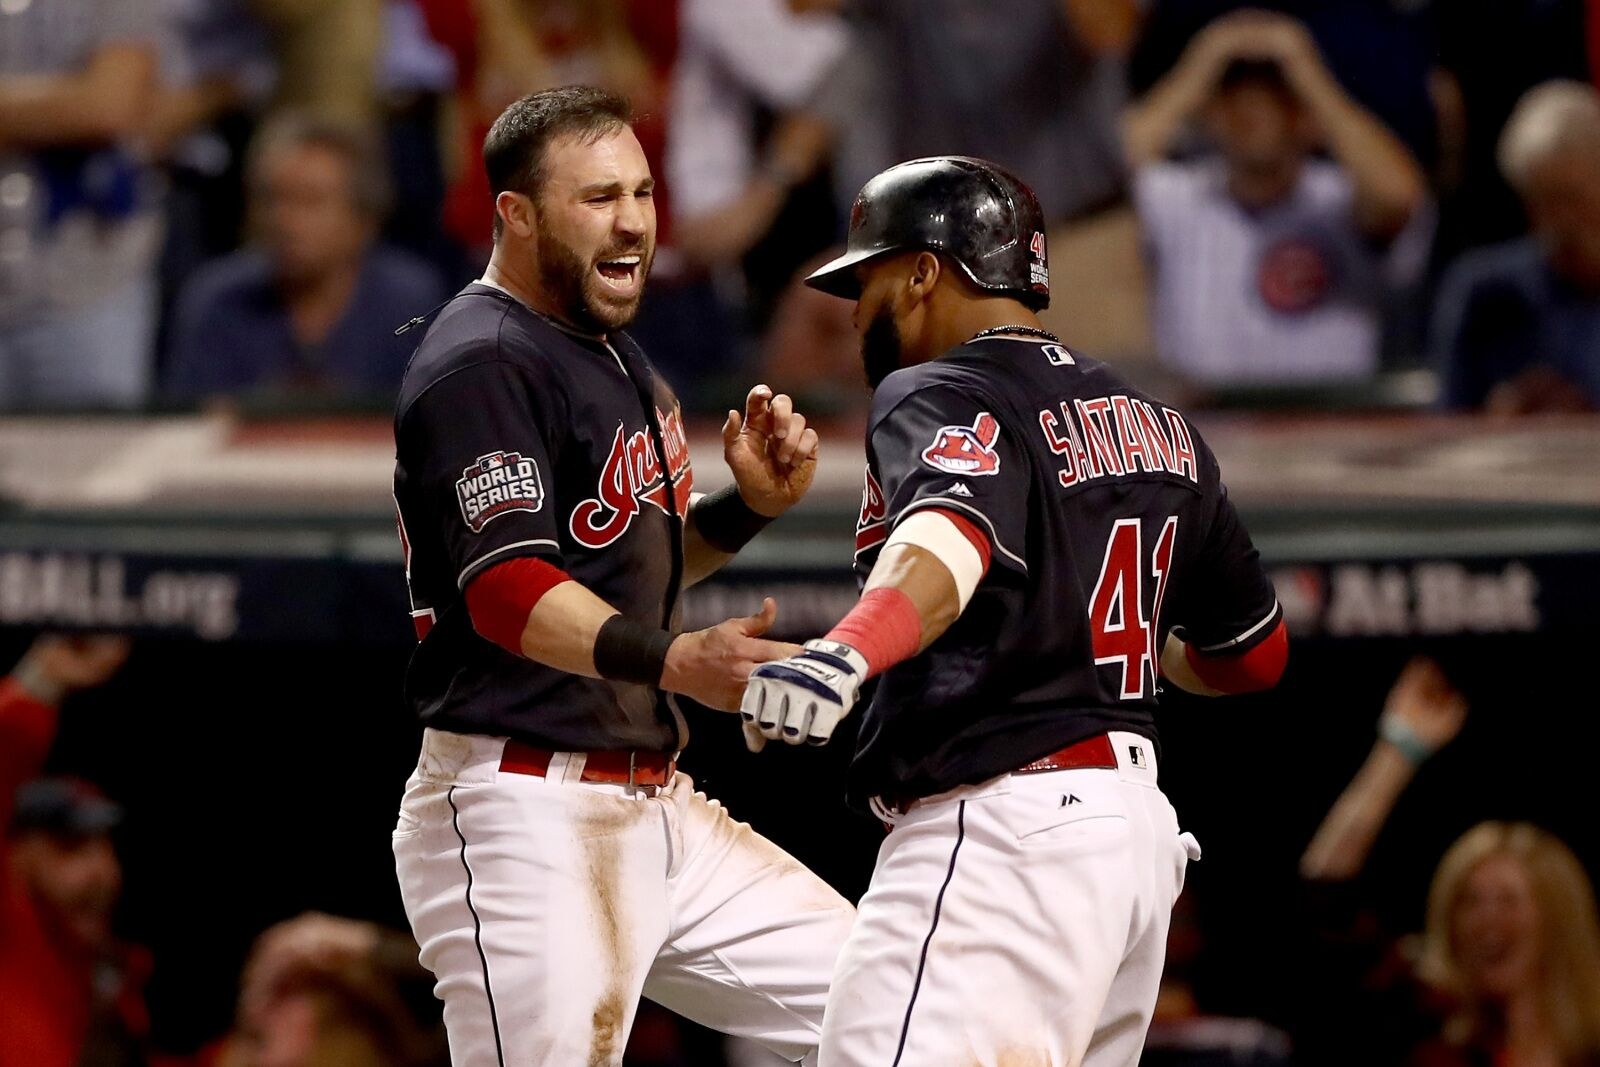 Cleveland Indians: Finally moving past the October 2016 nostalgia